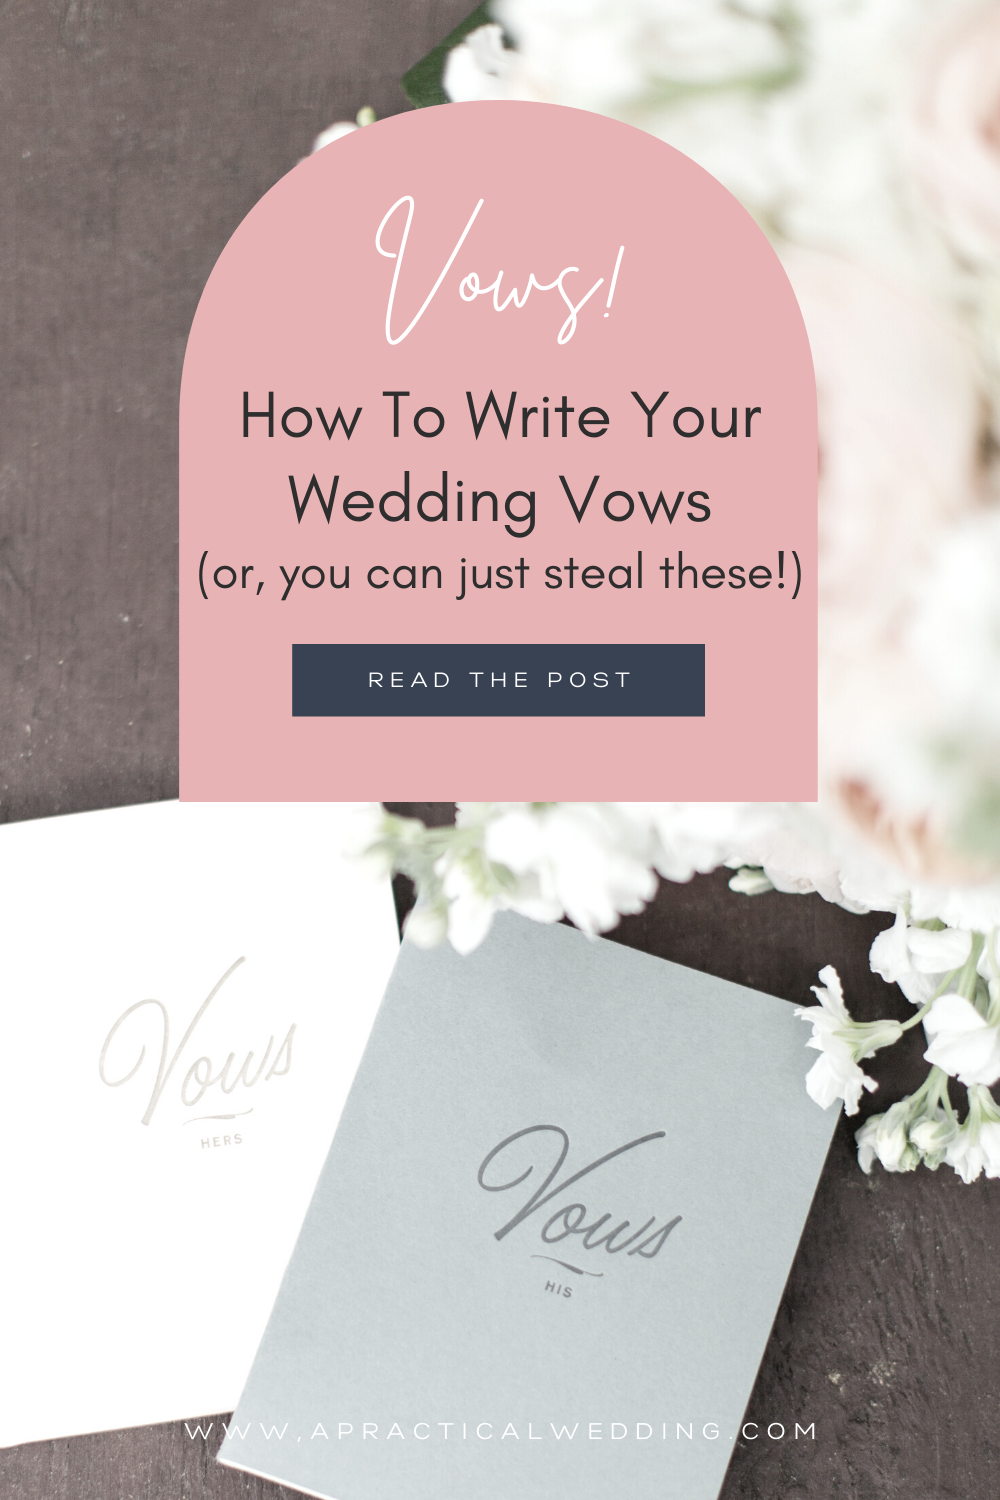 "Image of wedding vow books with text that says: ""Vows! How to write your wedding vows (or, you can just steal these!)"